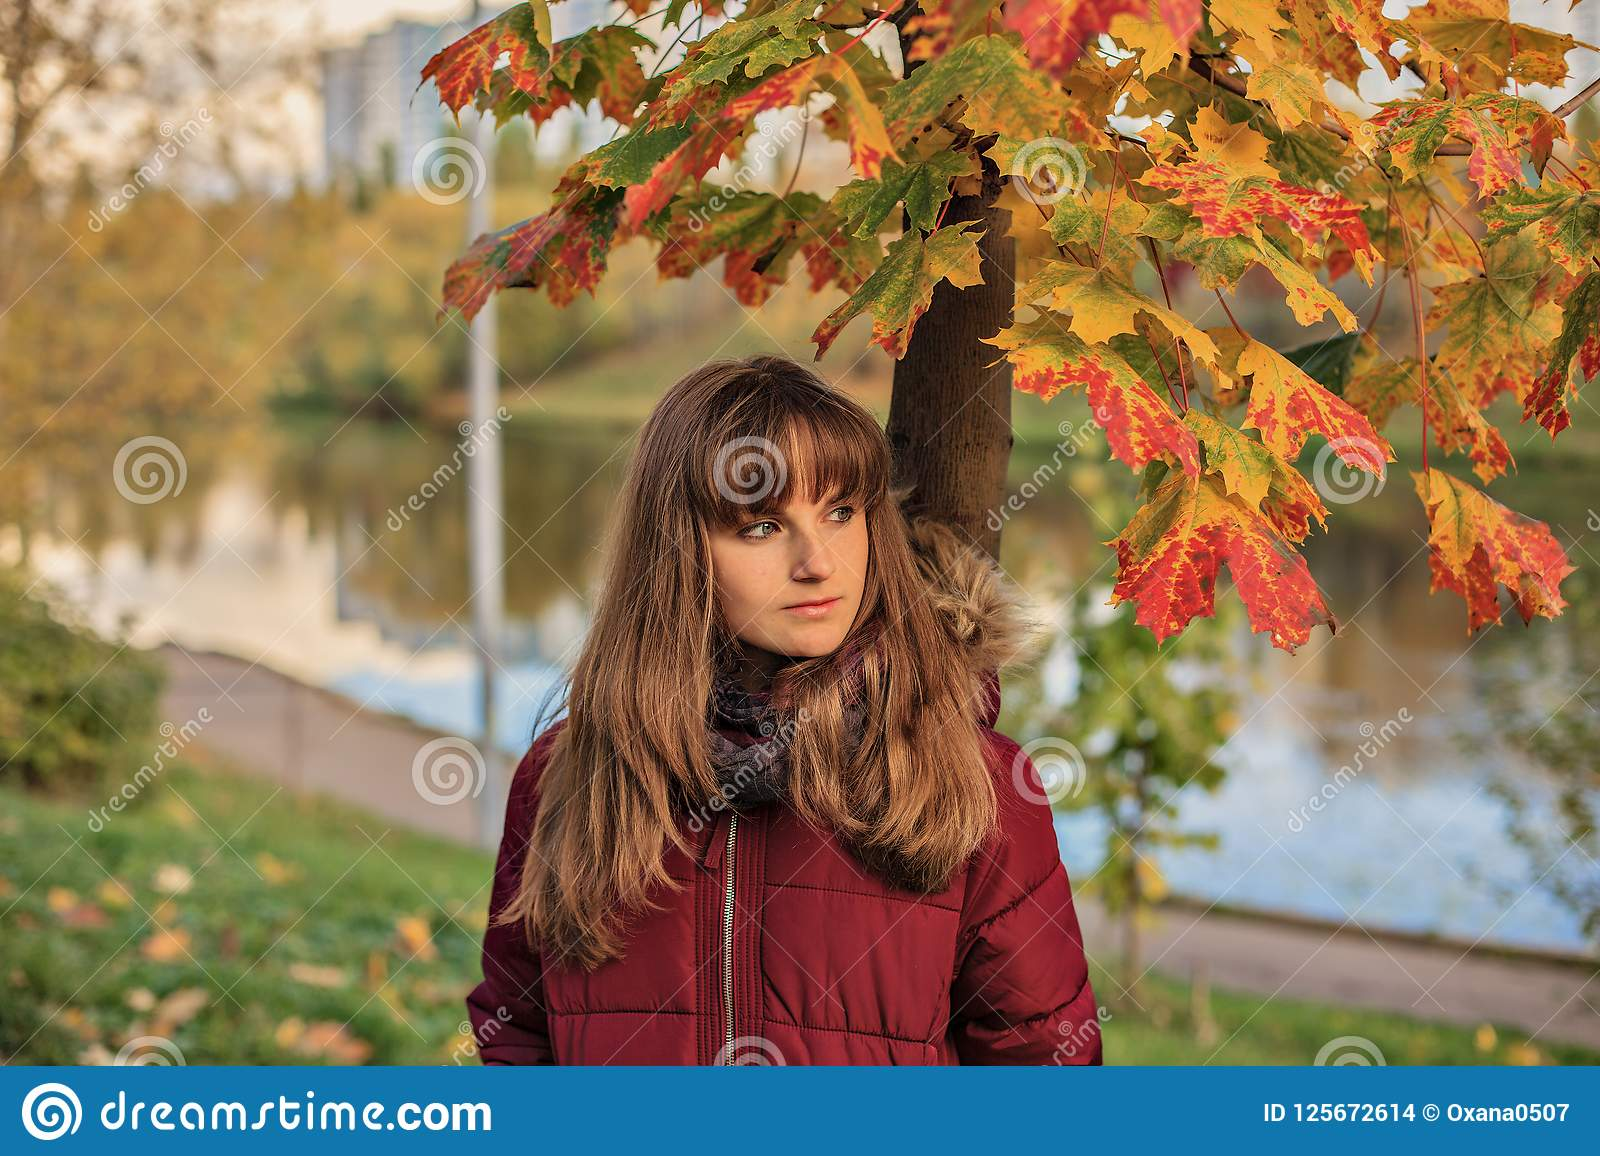 Teen girl standing near beautiful maple. close-up portrait of young redheaded girl in autumn forest.